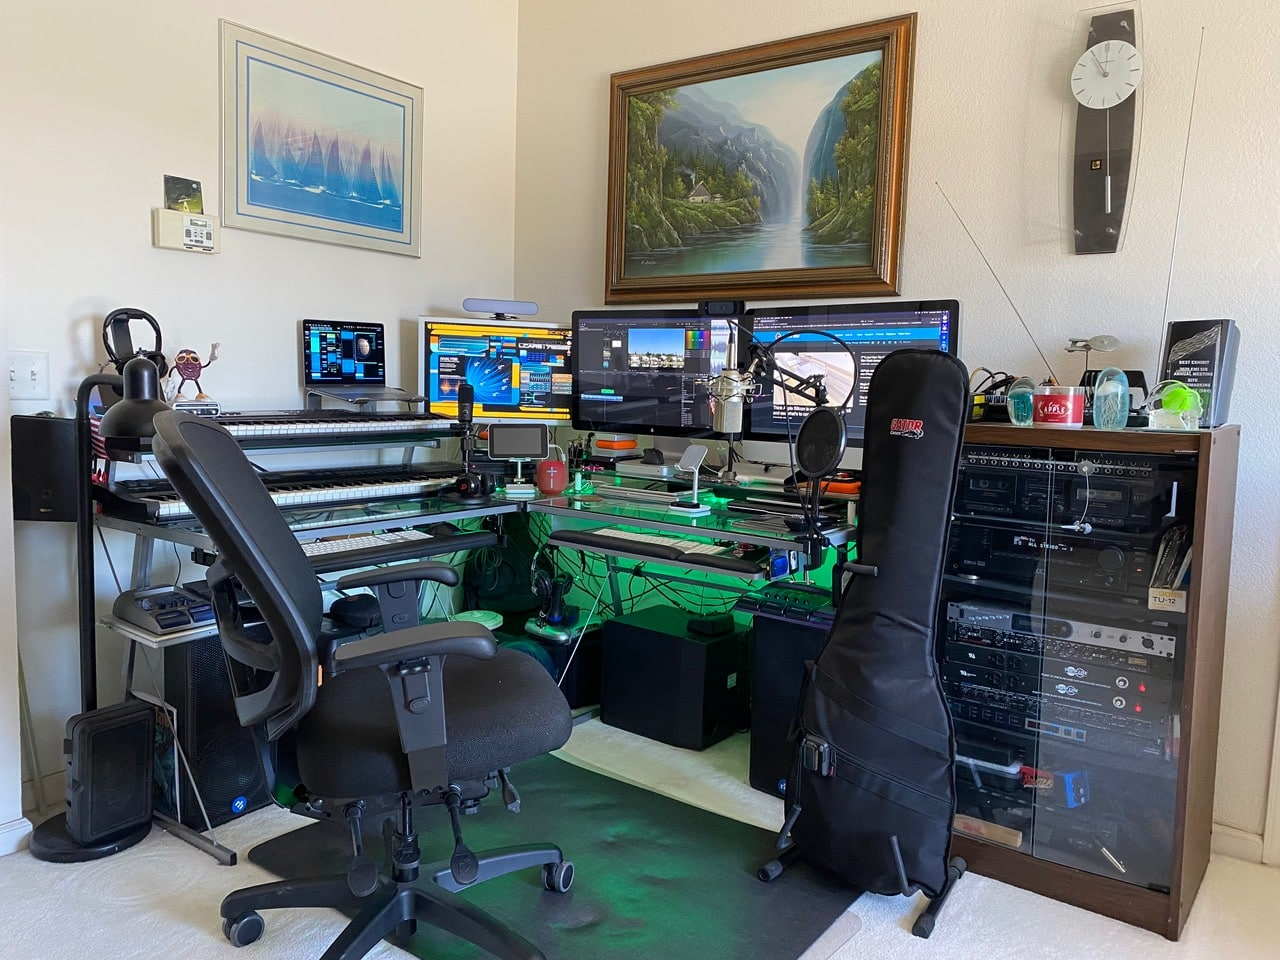 Thad K's setup features 69 different pieces of gear.